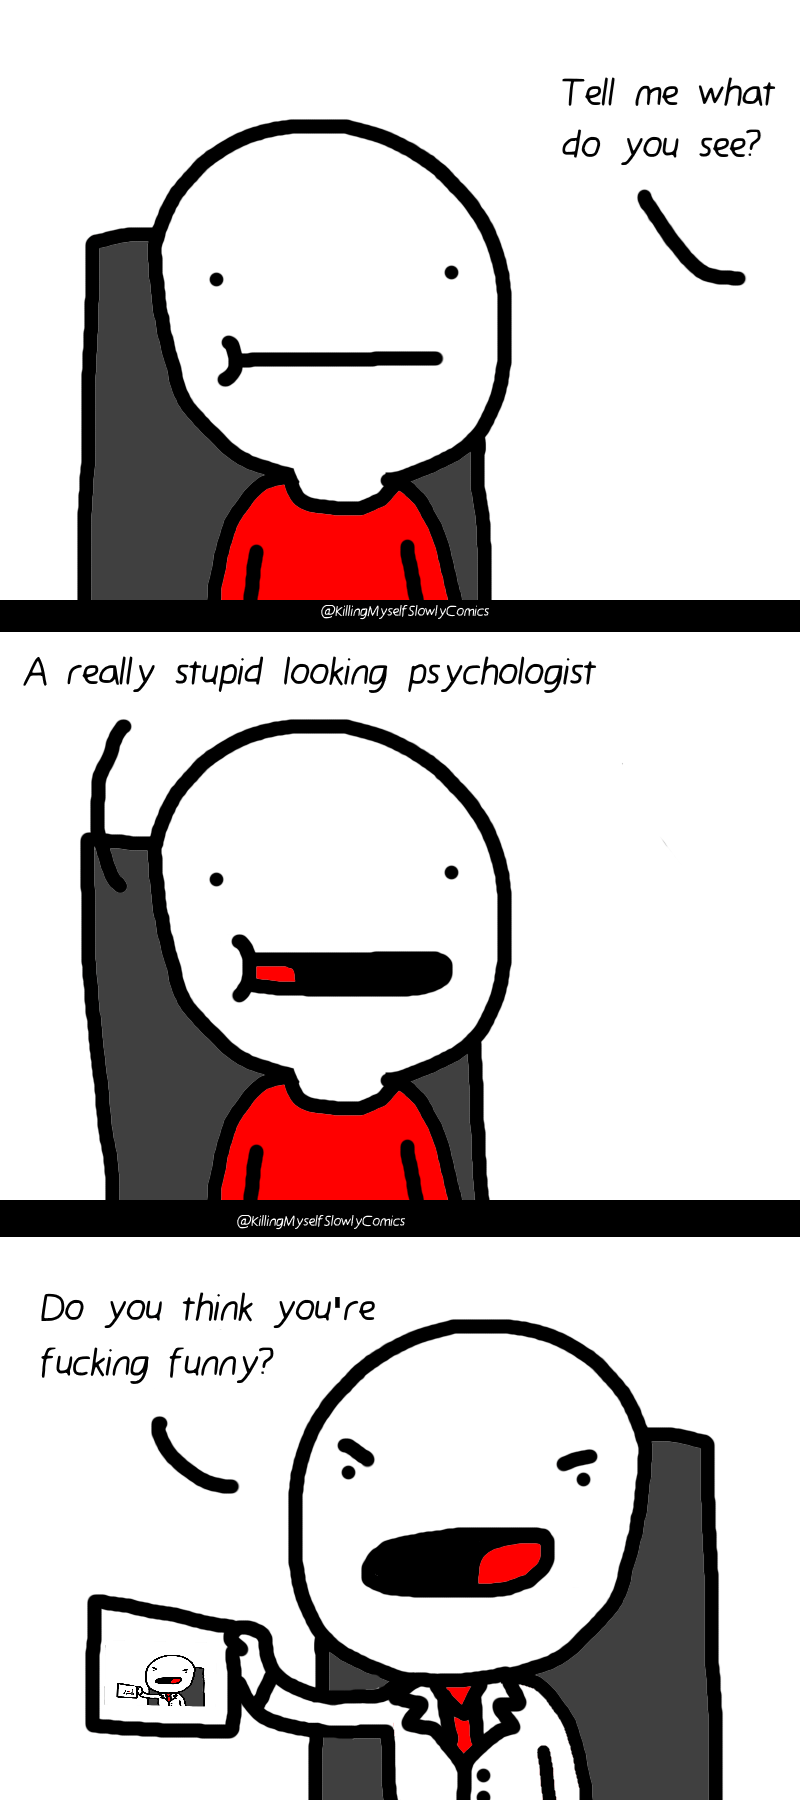 psychologist funny web comics - 8802376960